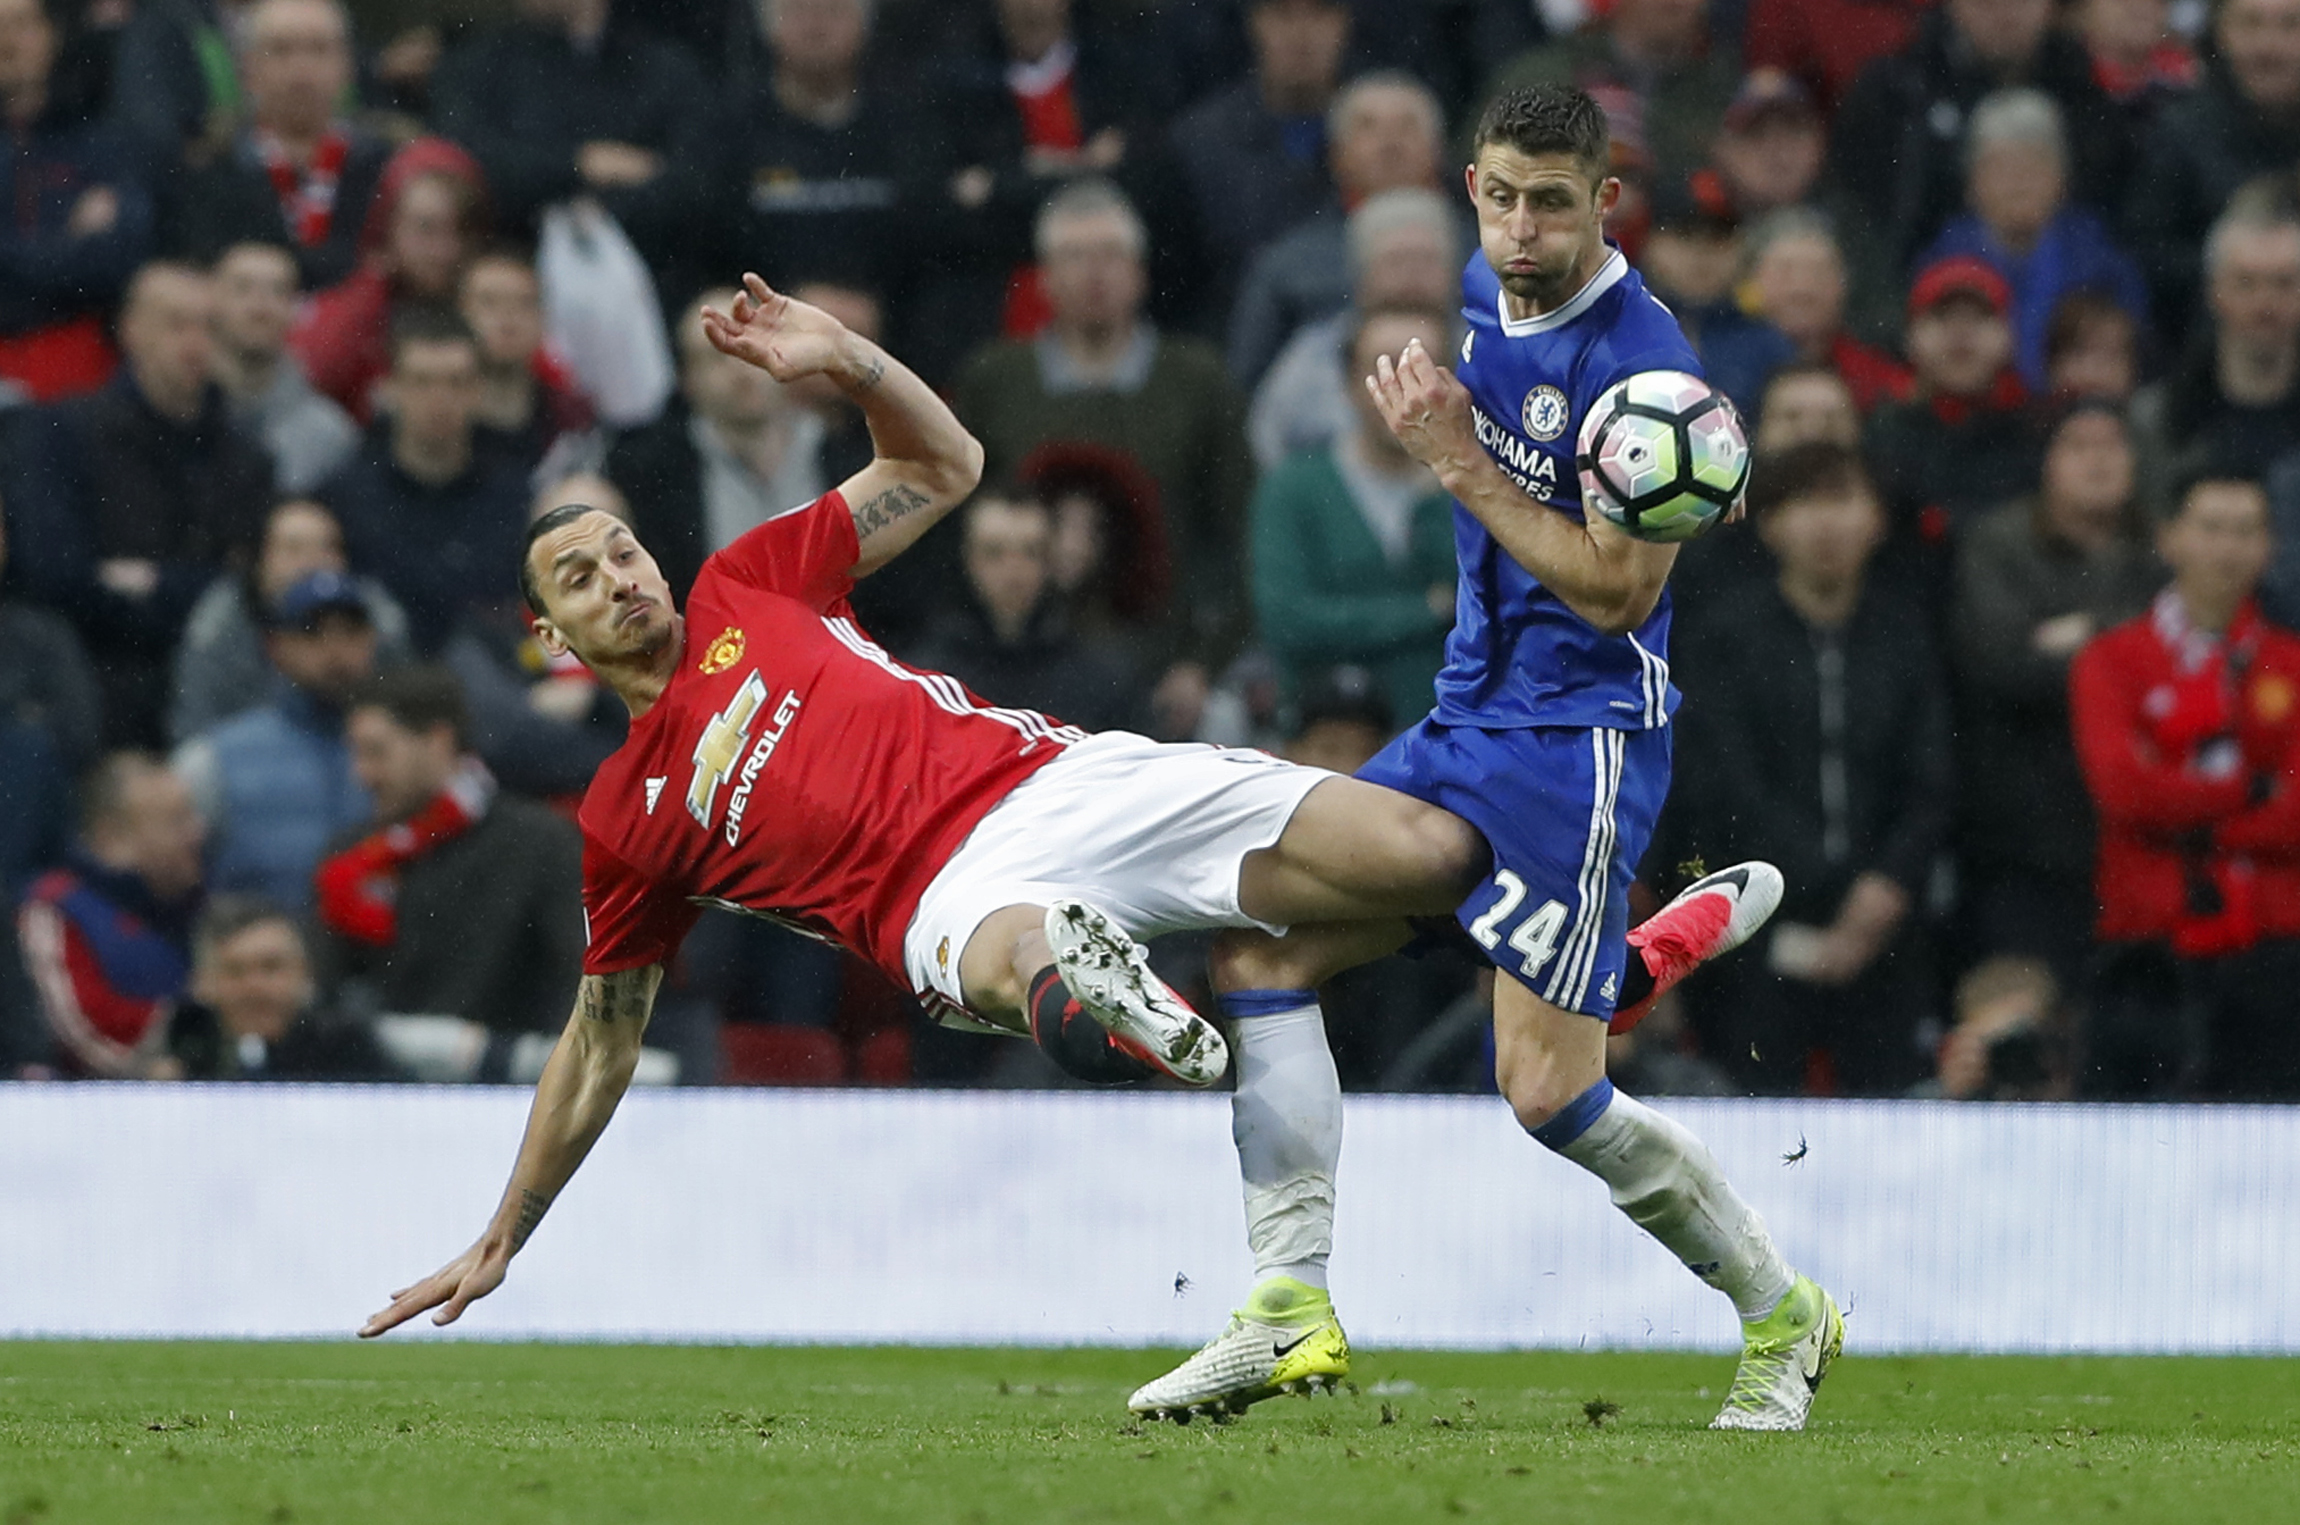 Football: Man United loss a wake-up call for Chelsea, says Cahill